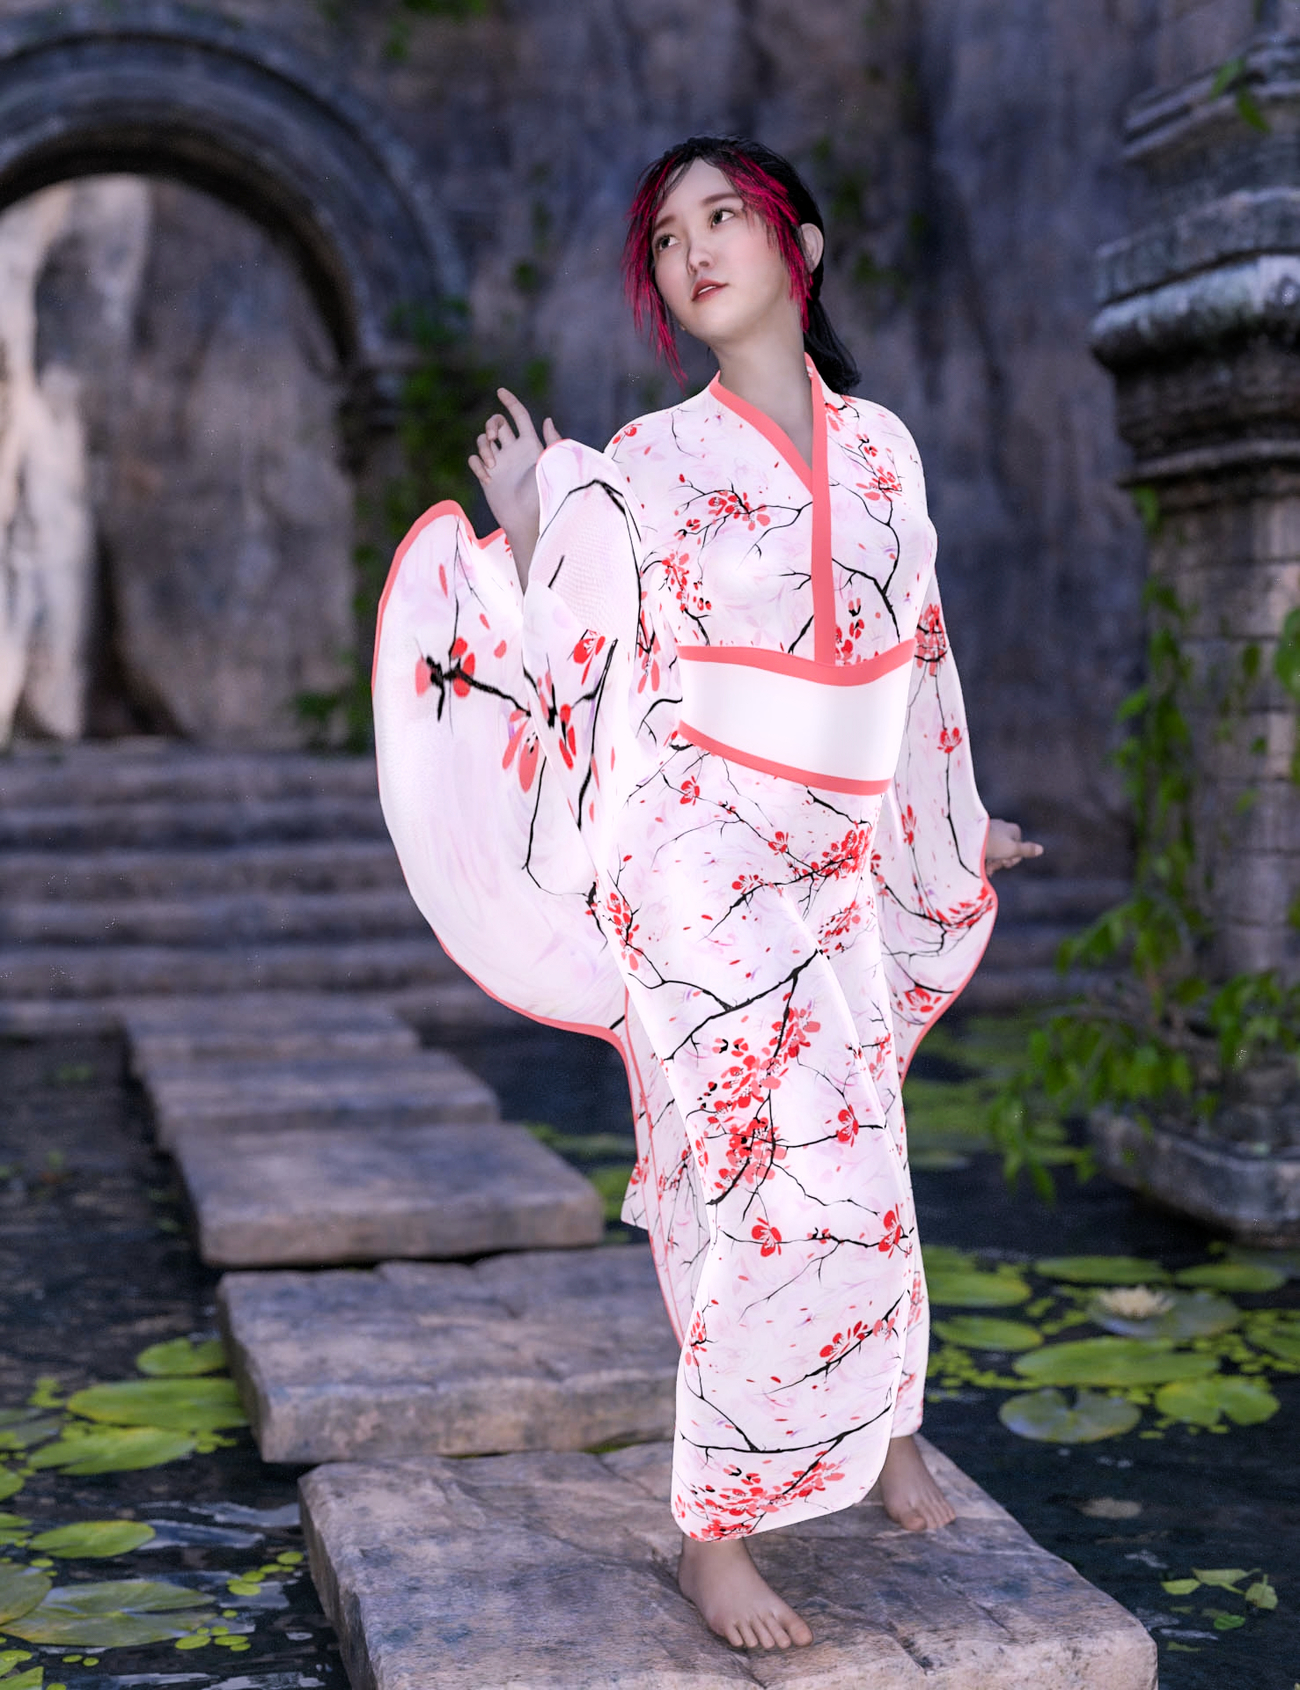 USAMI 4 ~At the mystic garden~ by Ark_Pilot